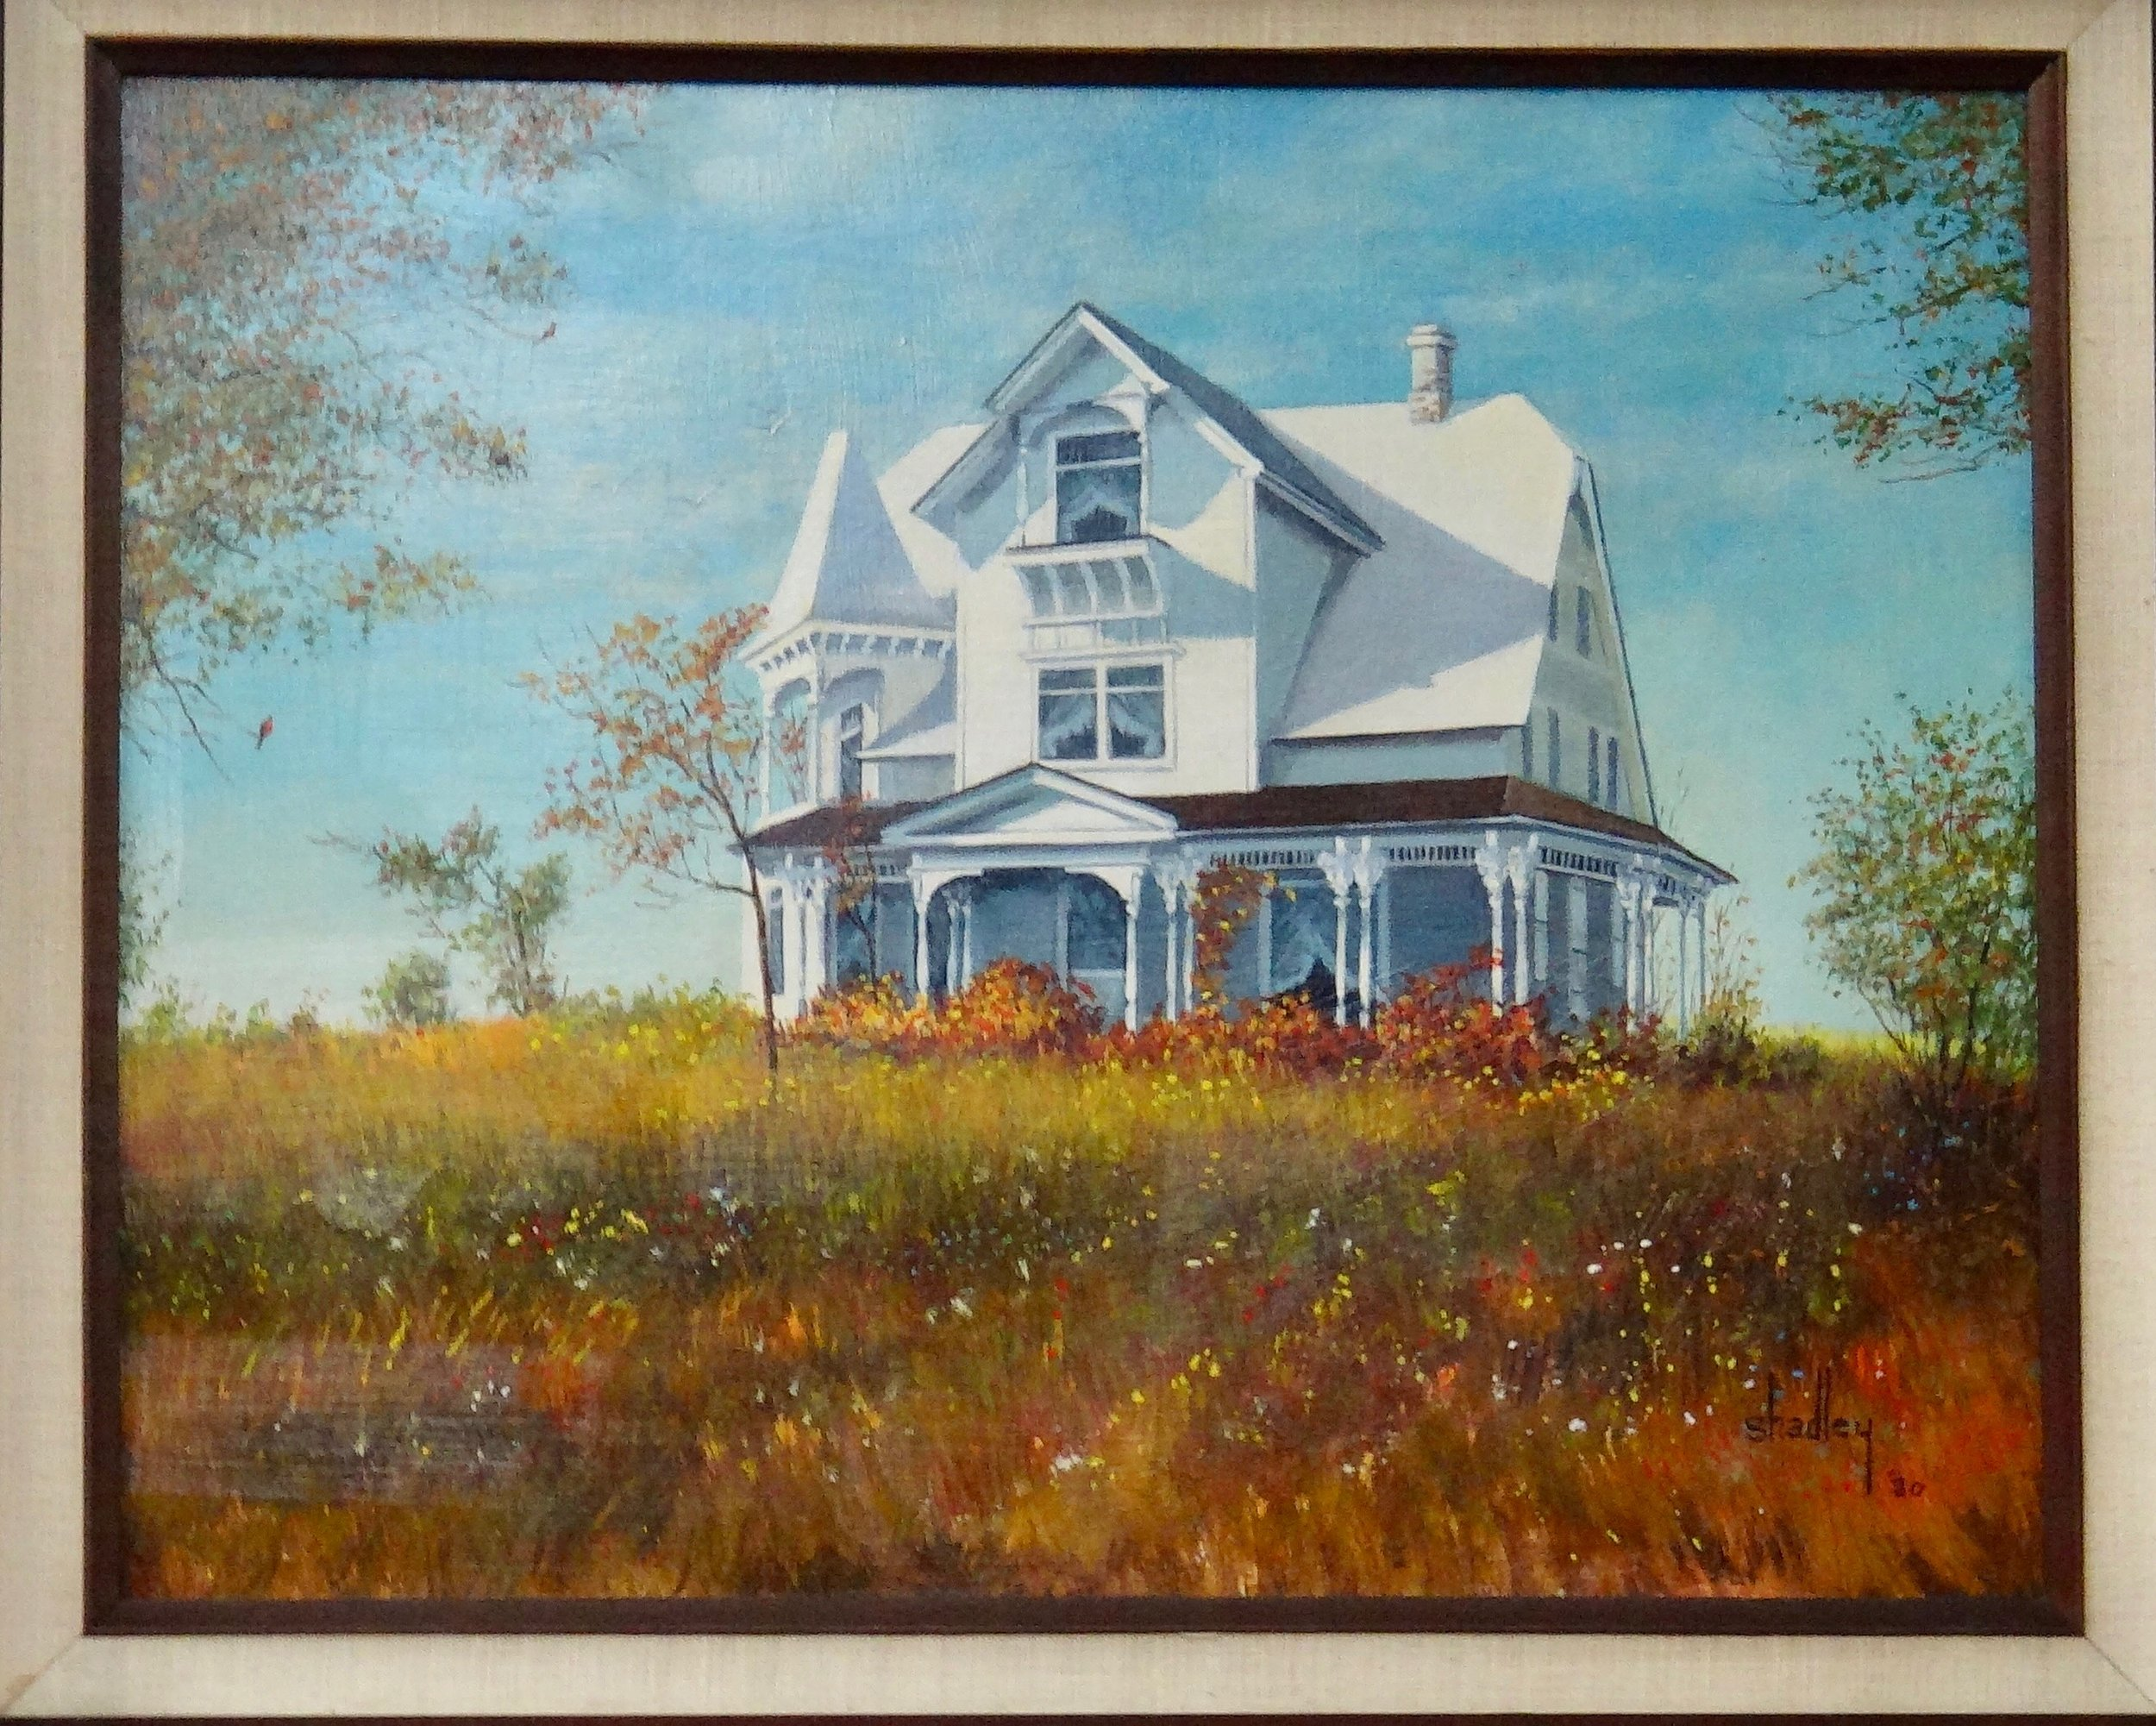 A painting done of the robards home in its full glory